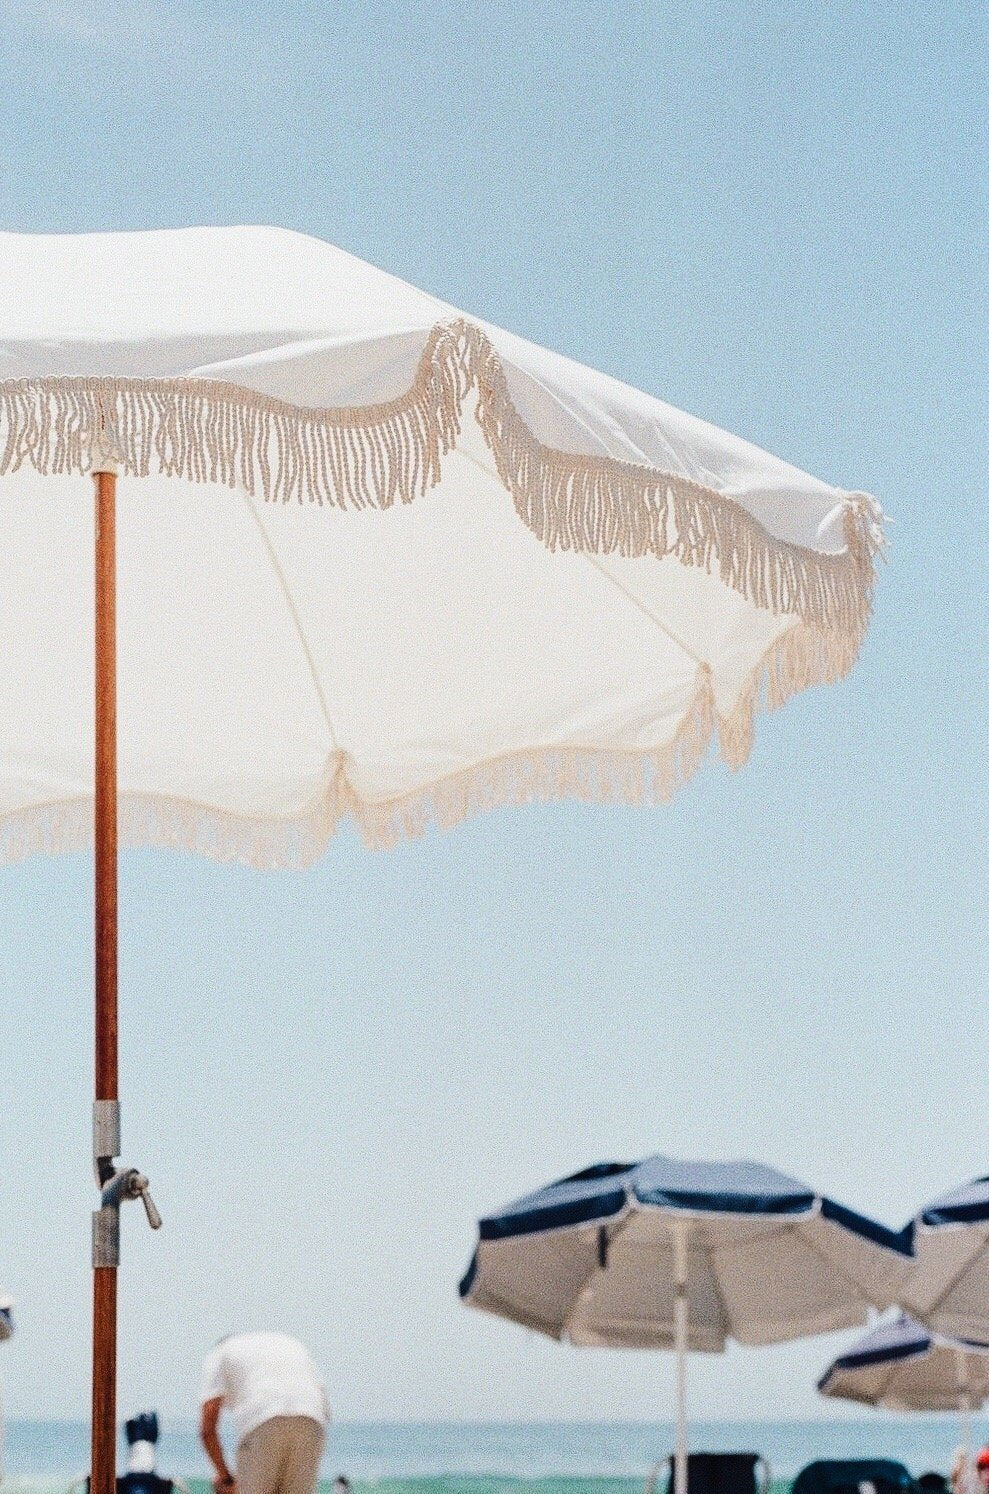 The Holiday Beach Umbrella - Antique White